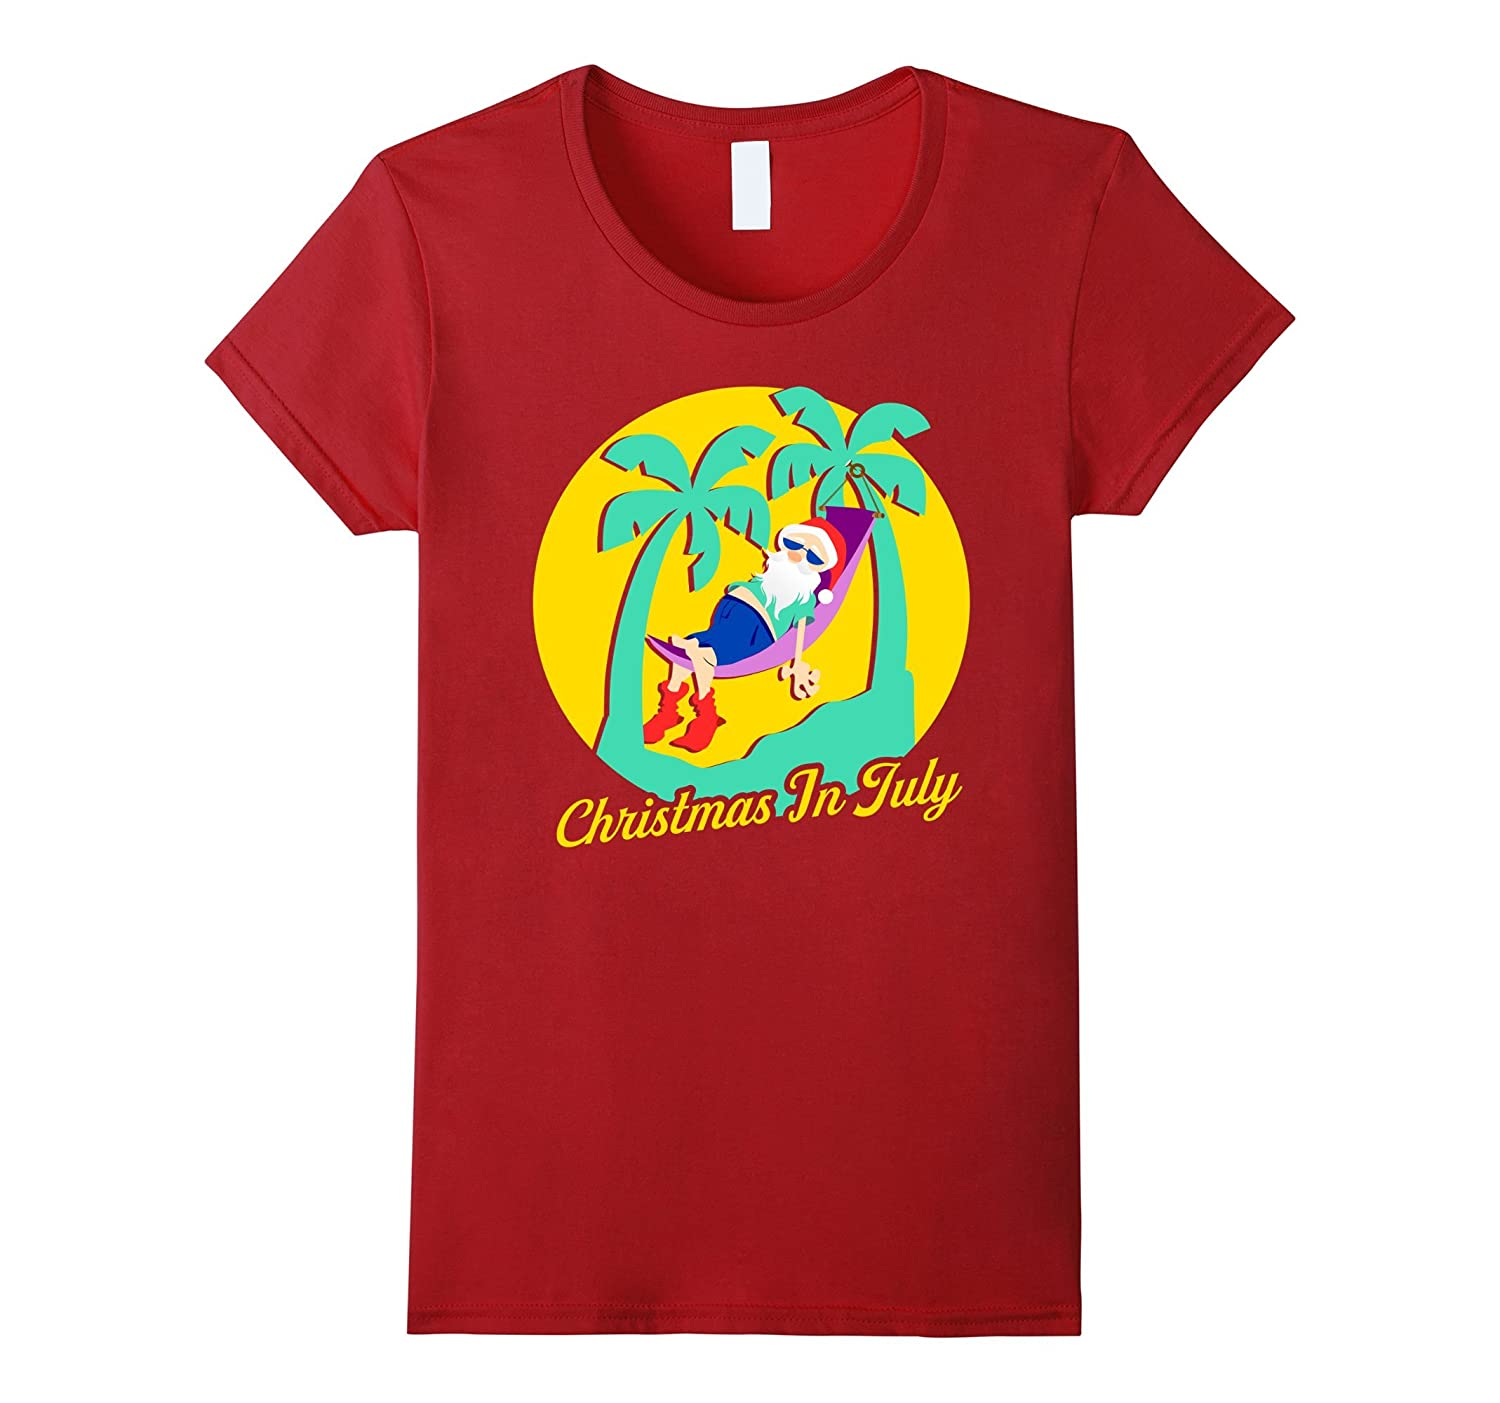 Christmas In July Shirts Decoration Party Supplies